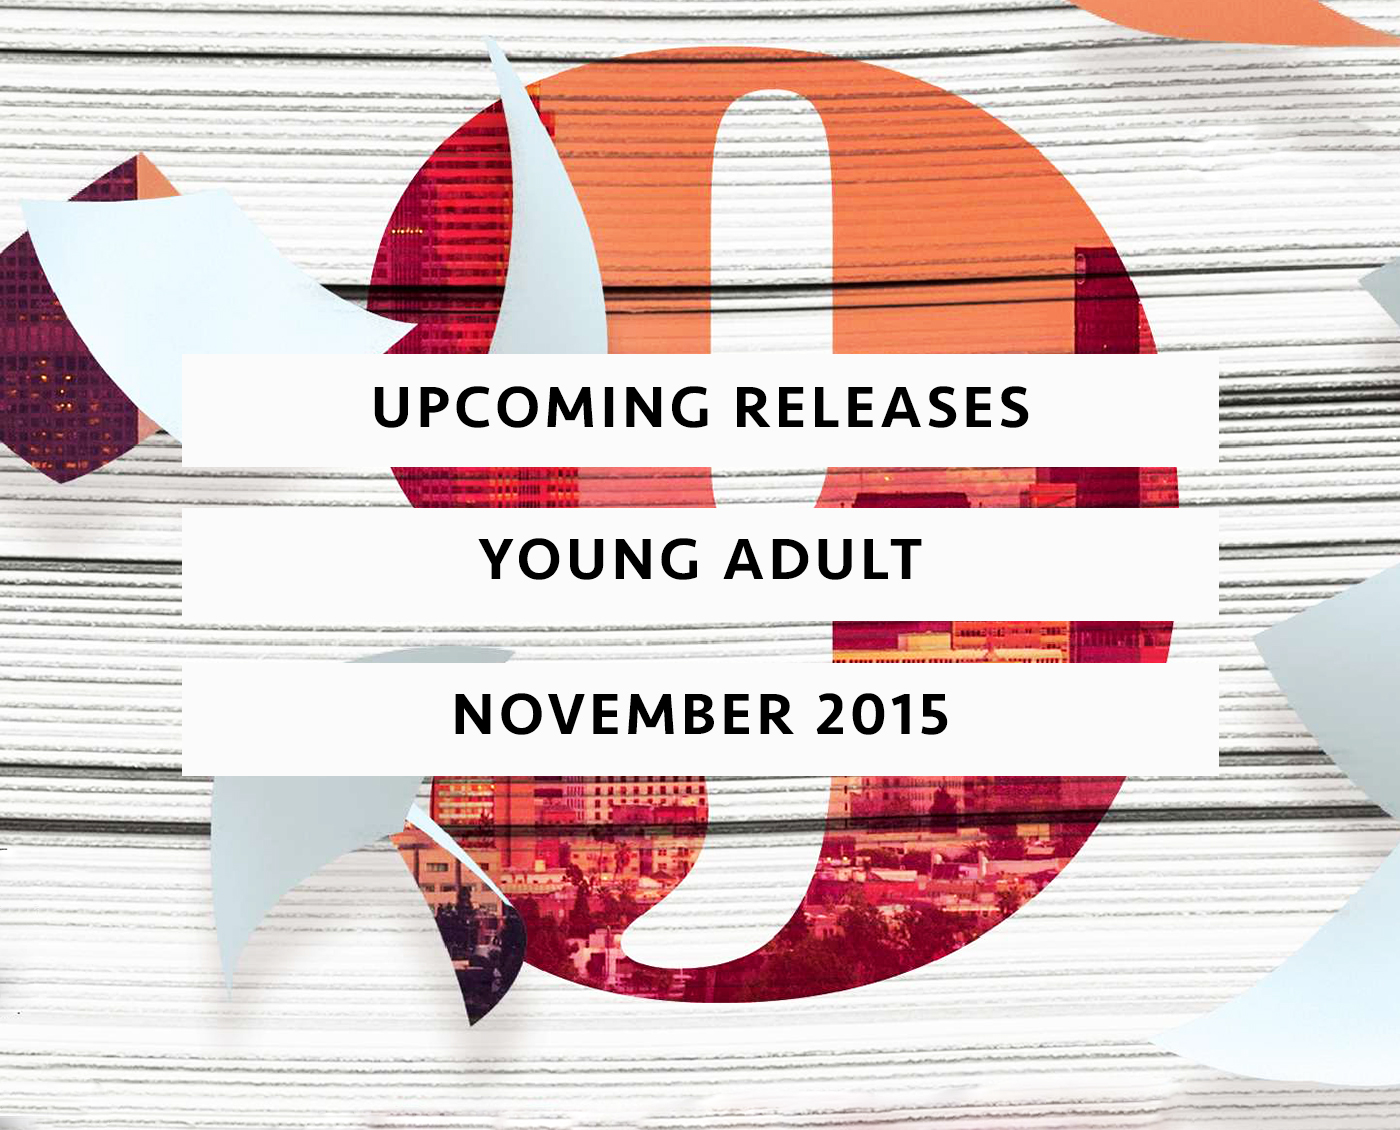 Upcoming Releases November 2015